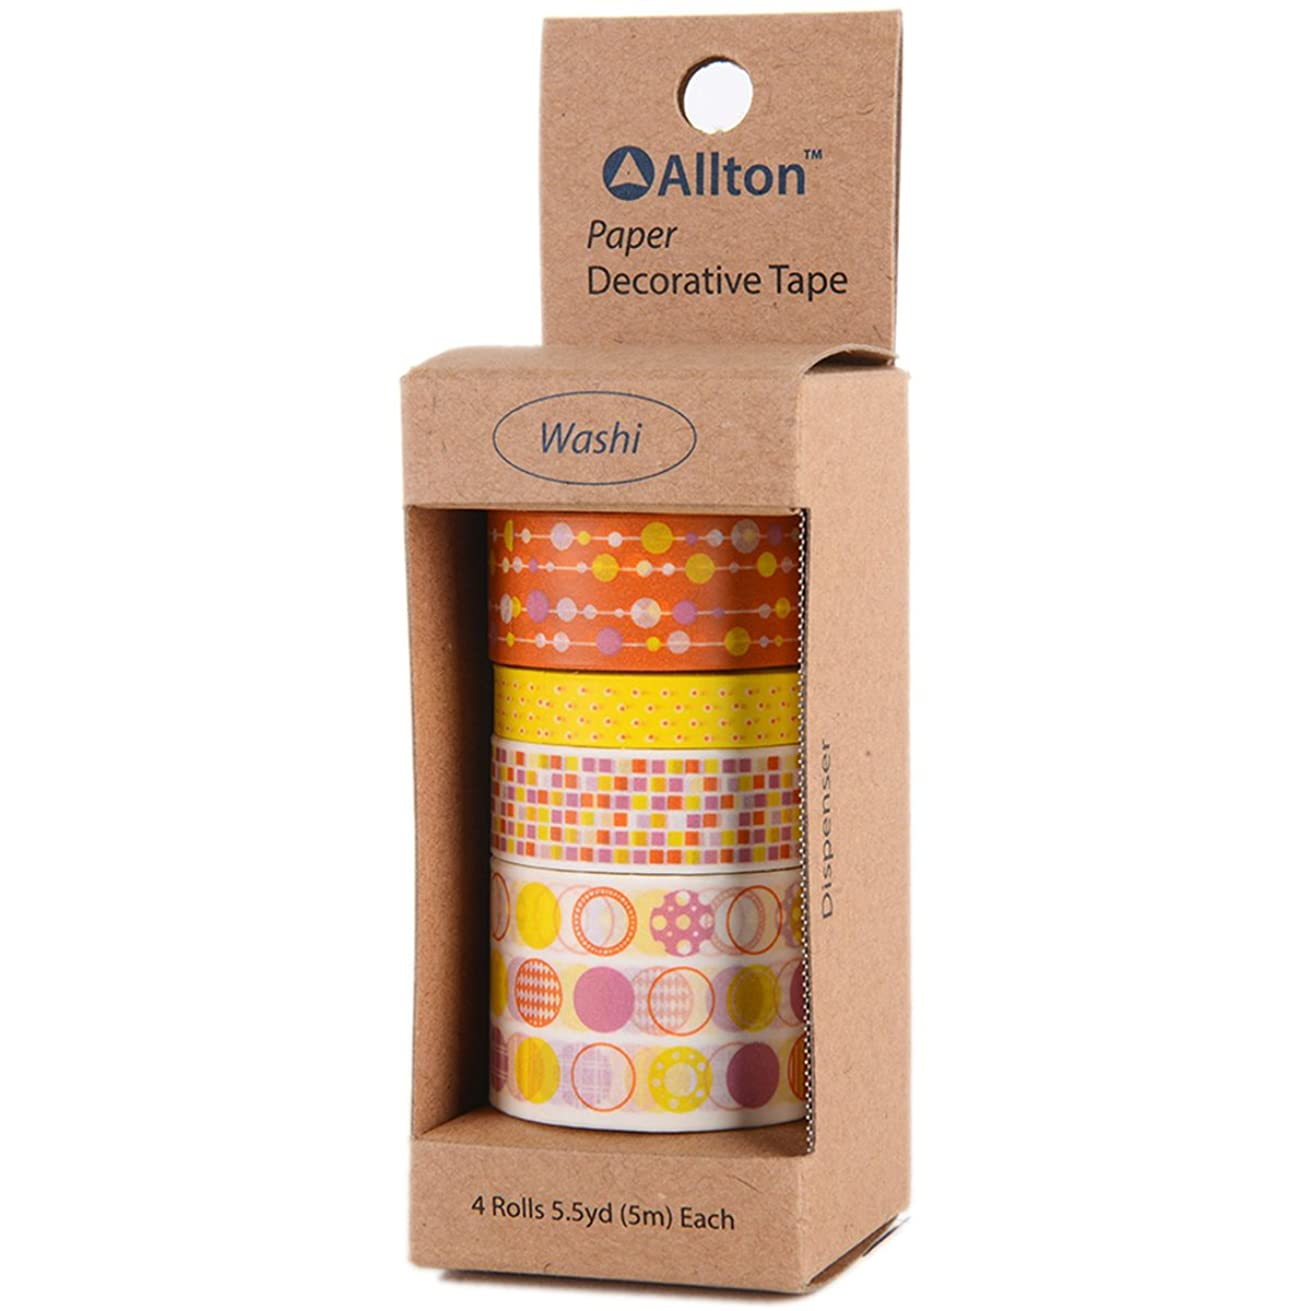 Allton TPX990010 Decorative Washi Tape 5m 4/Pkg Yellow Orange POP,